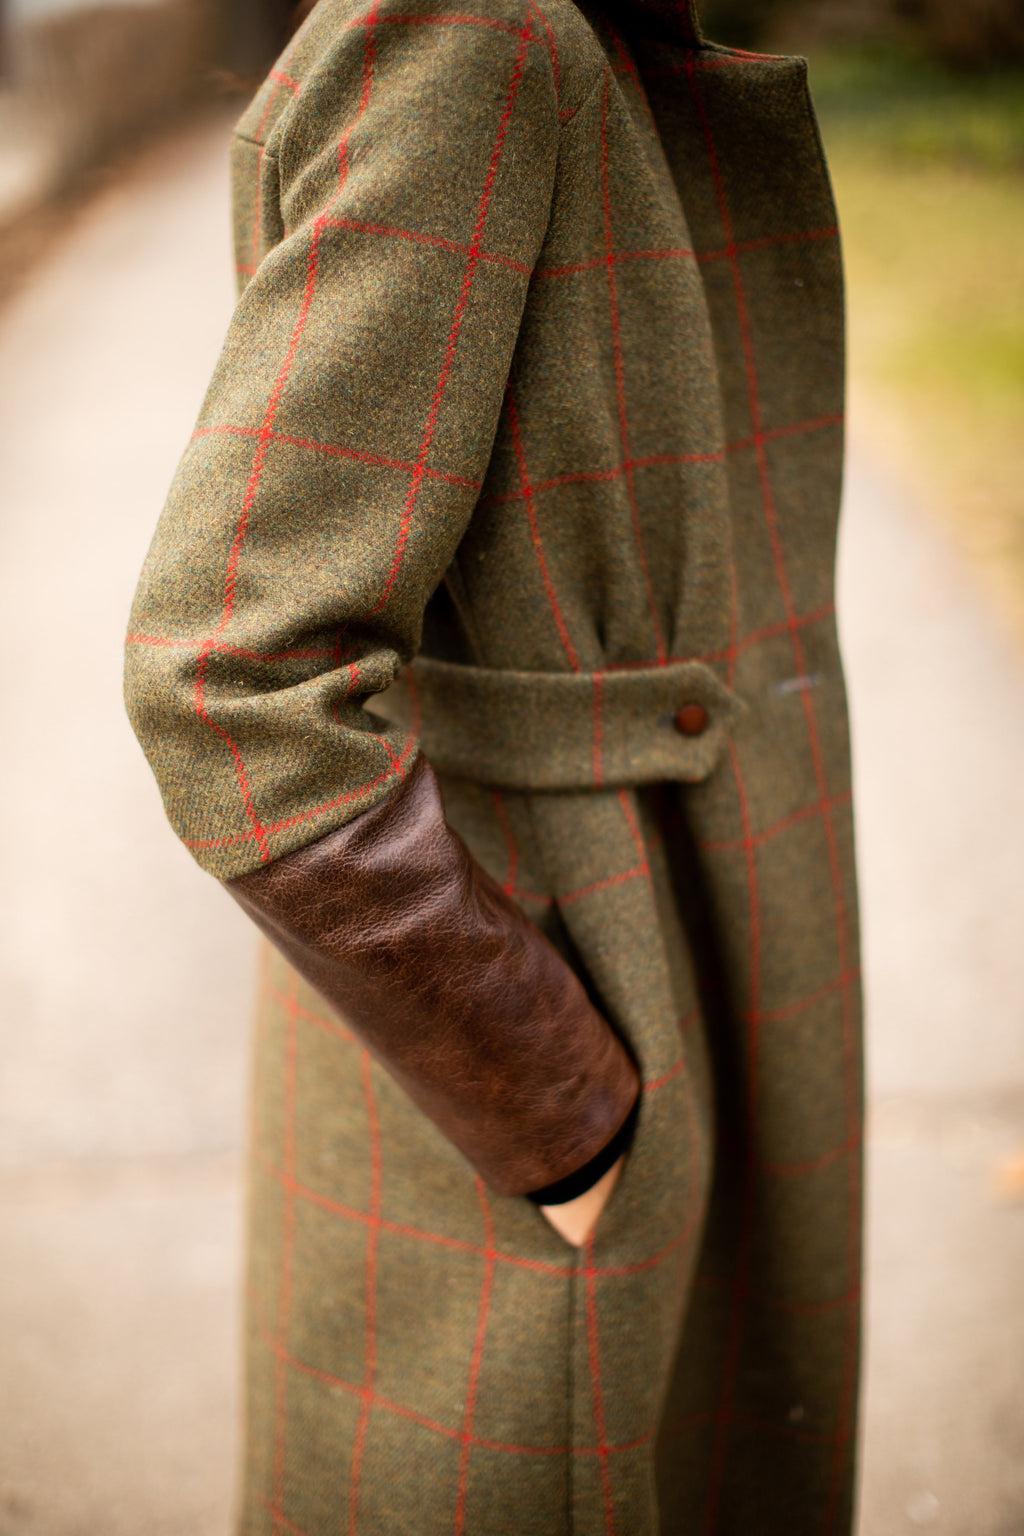 Green Brown Red Burgundy Tartan Plaid Wool Color Block Coat Jacket with Italian Leather Cuffs Button Burberry Fendi Ralph Tailored Custom High End Luxury